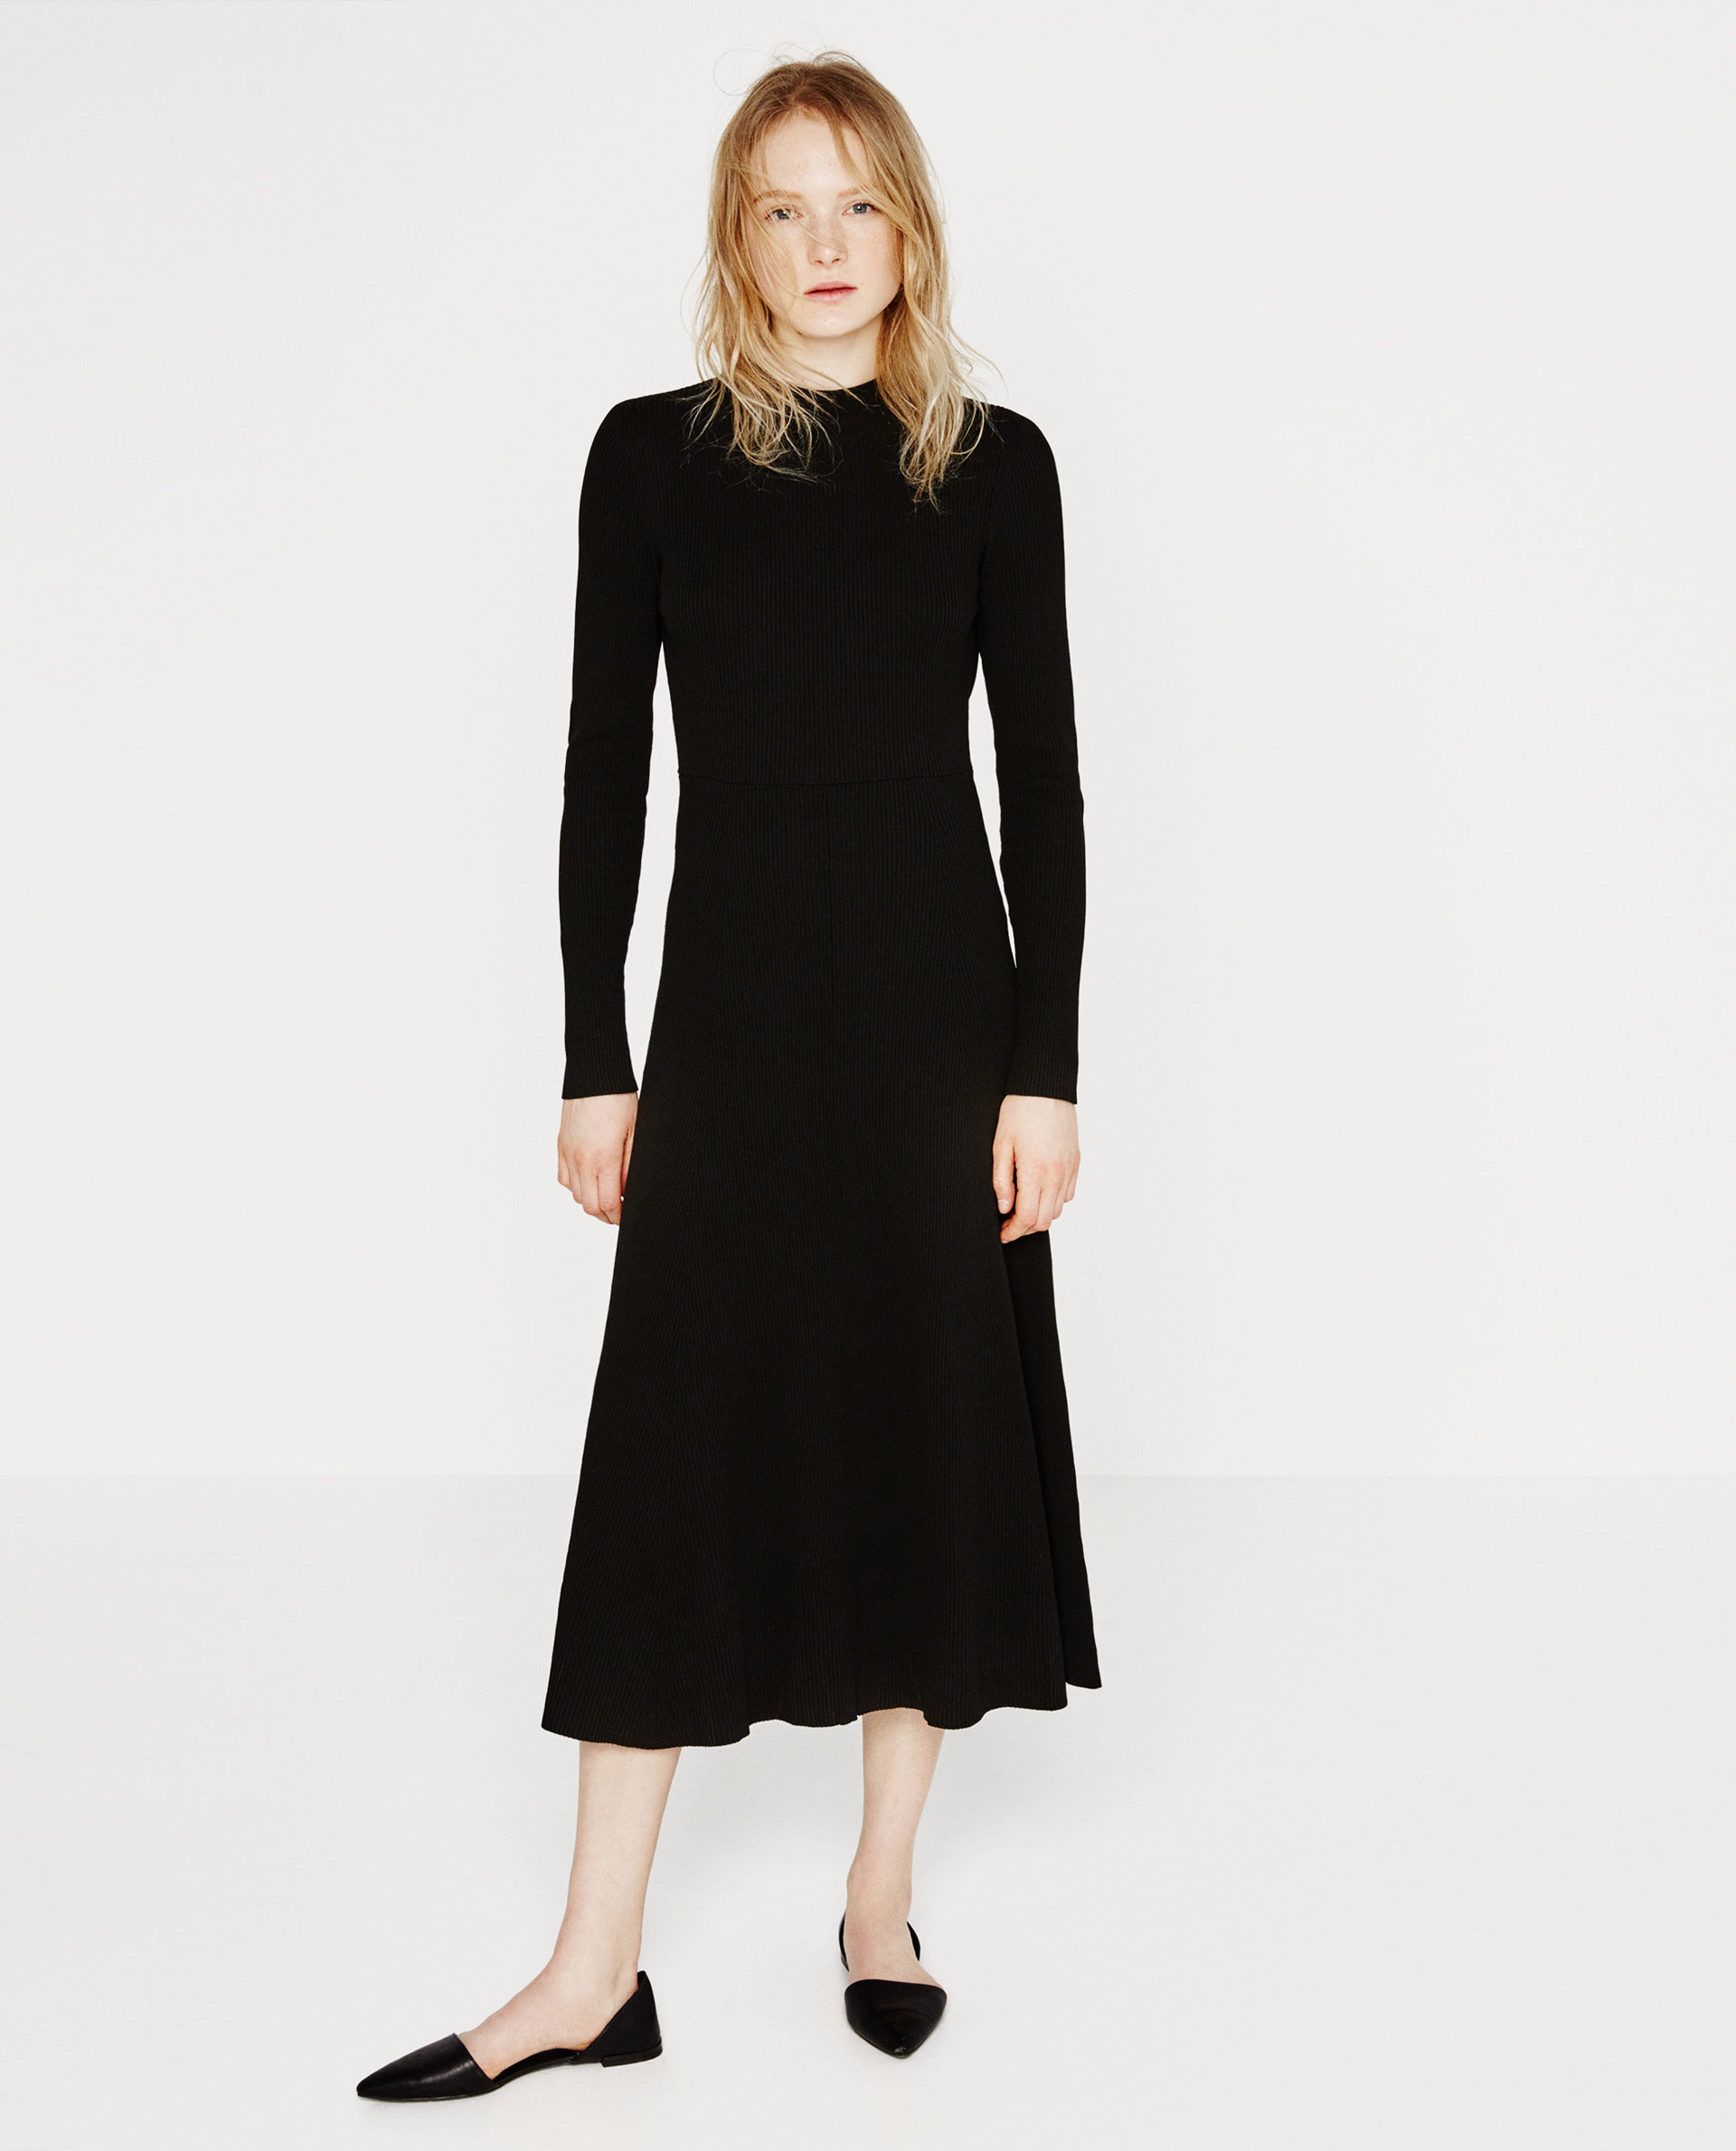 Zara Low-cut Back Dress in Black  Lyst